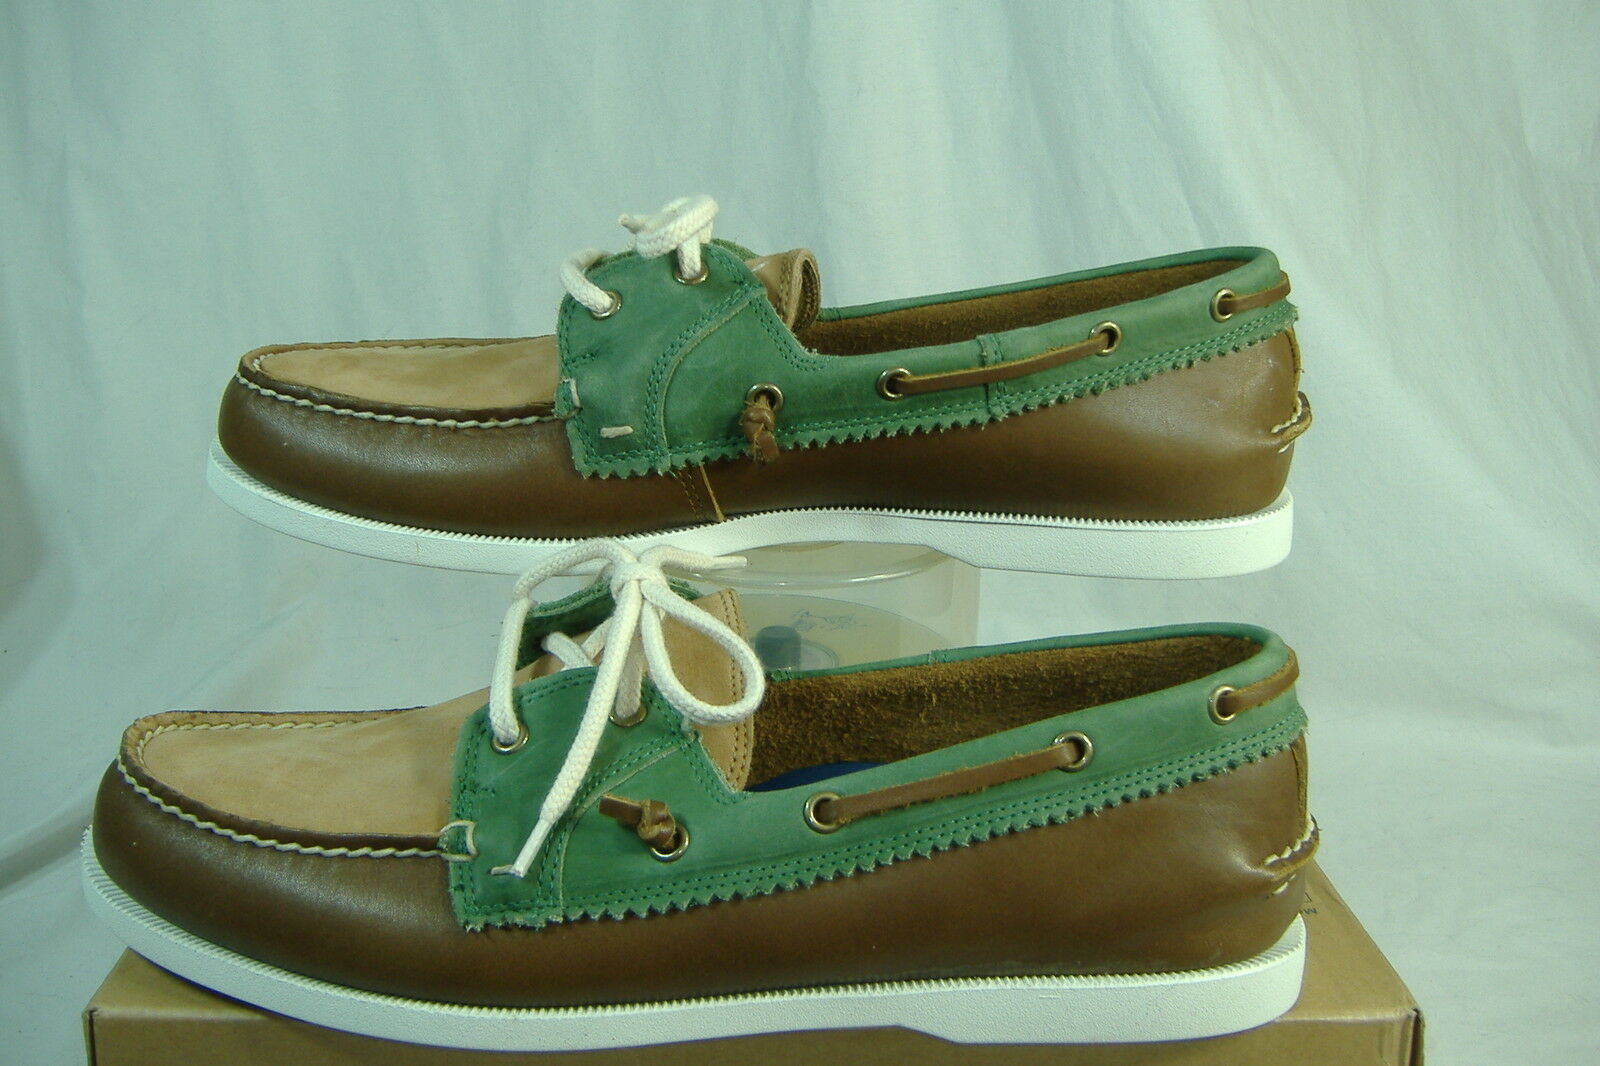 New Mens 13 Bass Montauk Brown Green Leather Slip On Boat Shoes 129